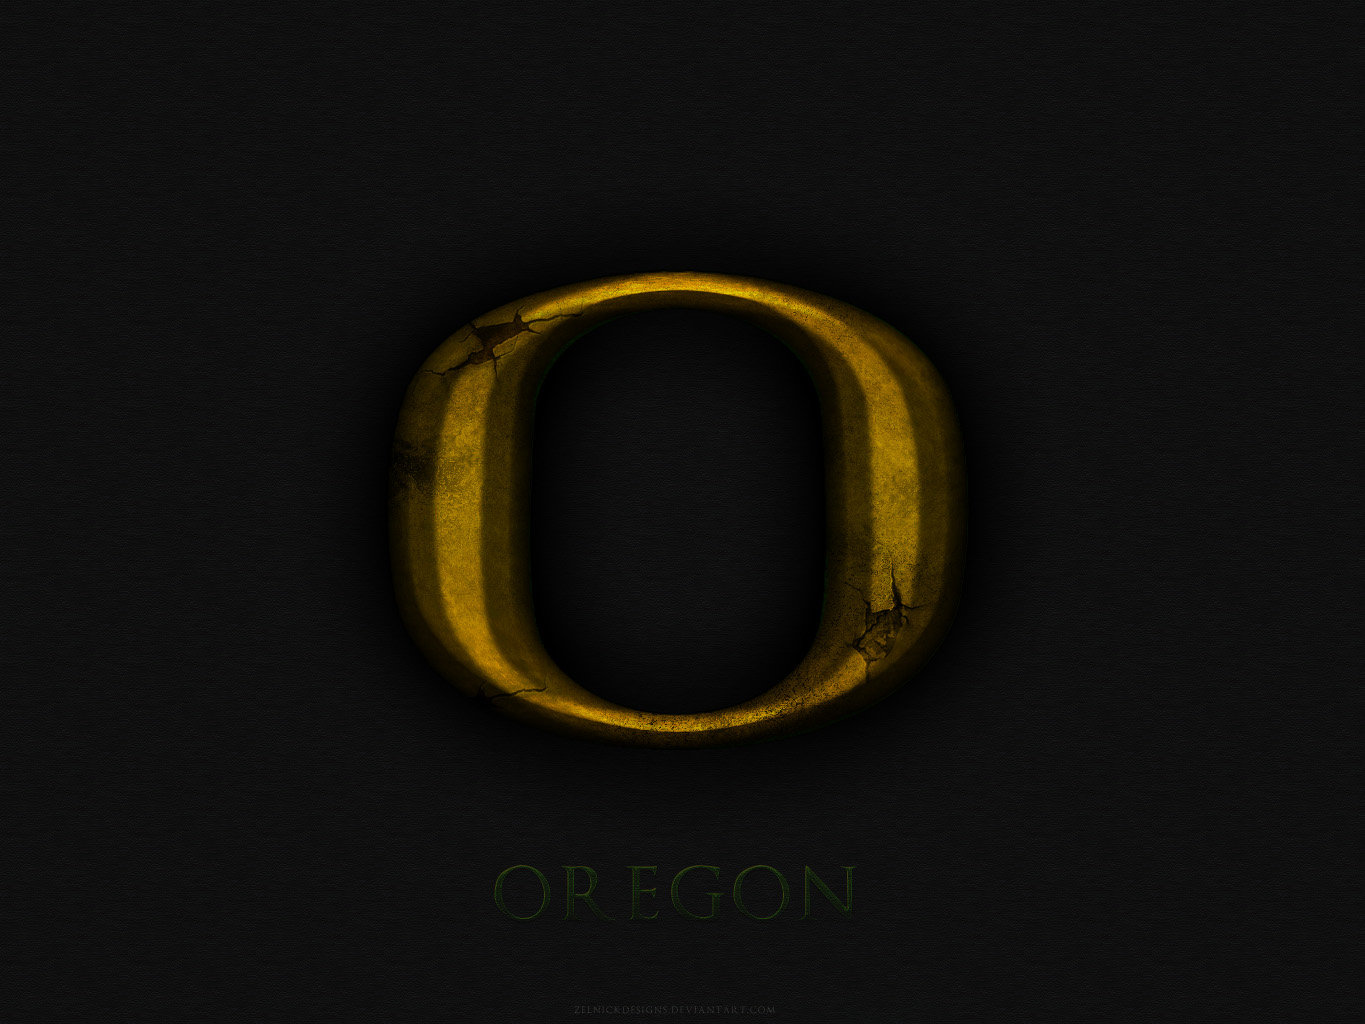 chrome for iphone of oregon wallpaper wallpapersafari 3900